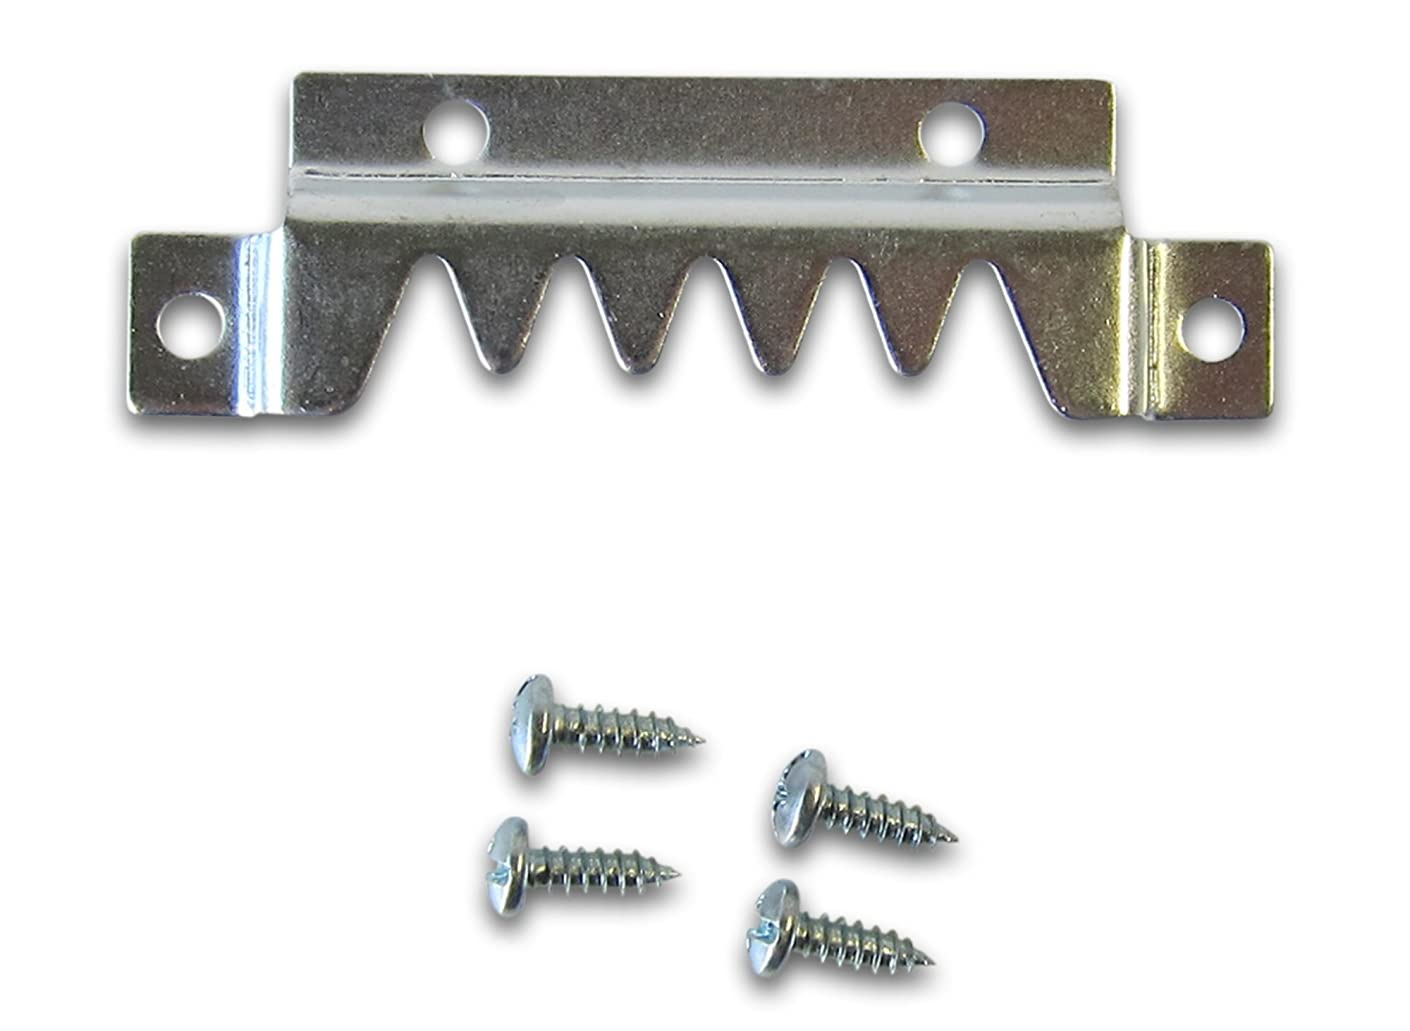 Super Heavy Duty Sawtooth Hanger with Screws | Pallet Hanger | Heavy Sawtooth Picture Hangers supports 250 lbs